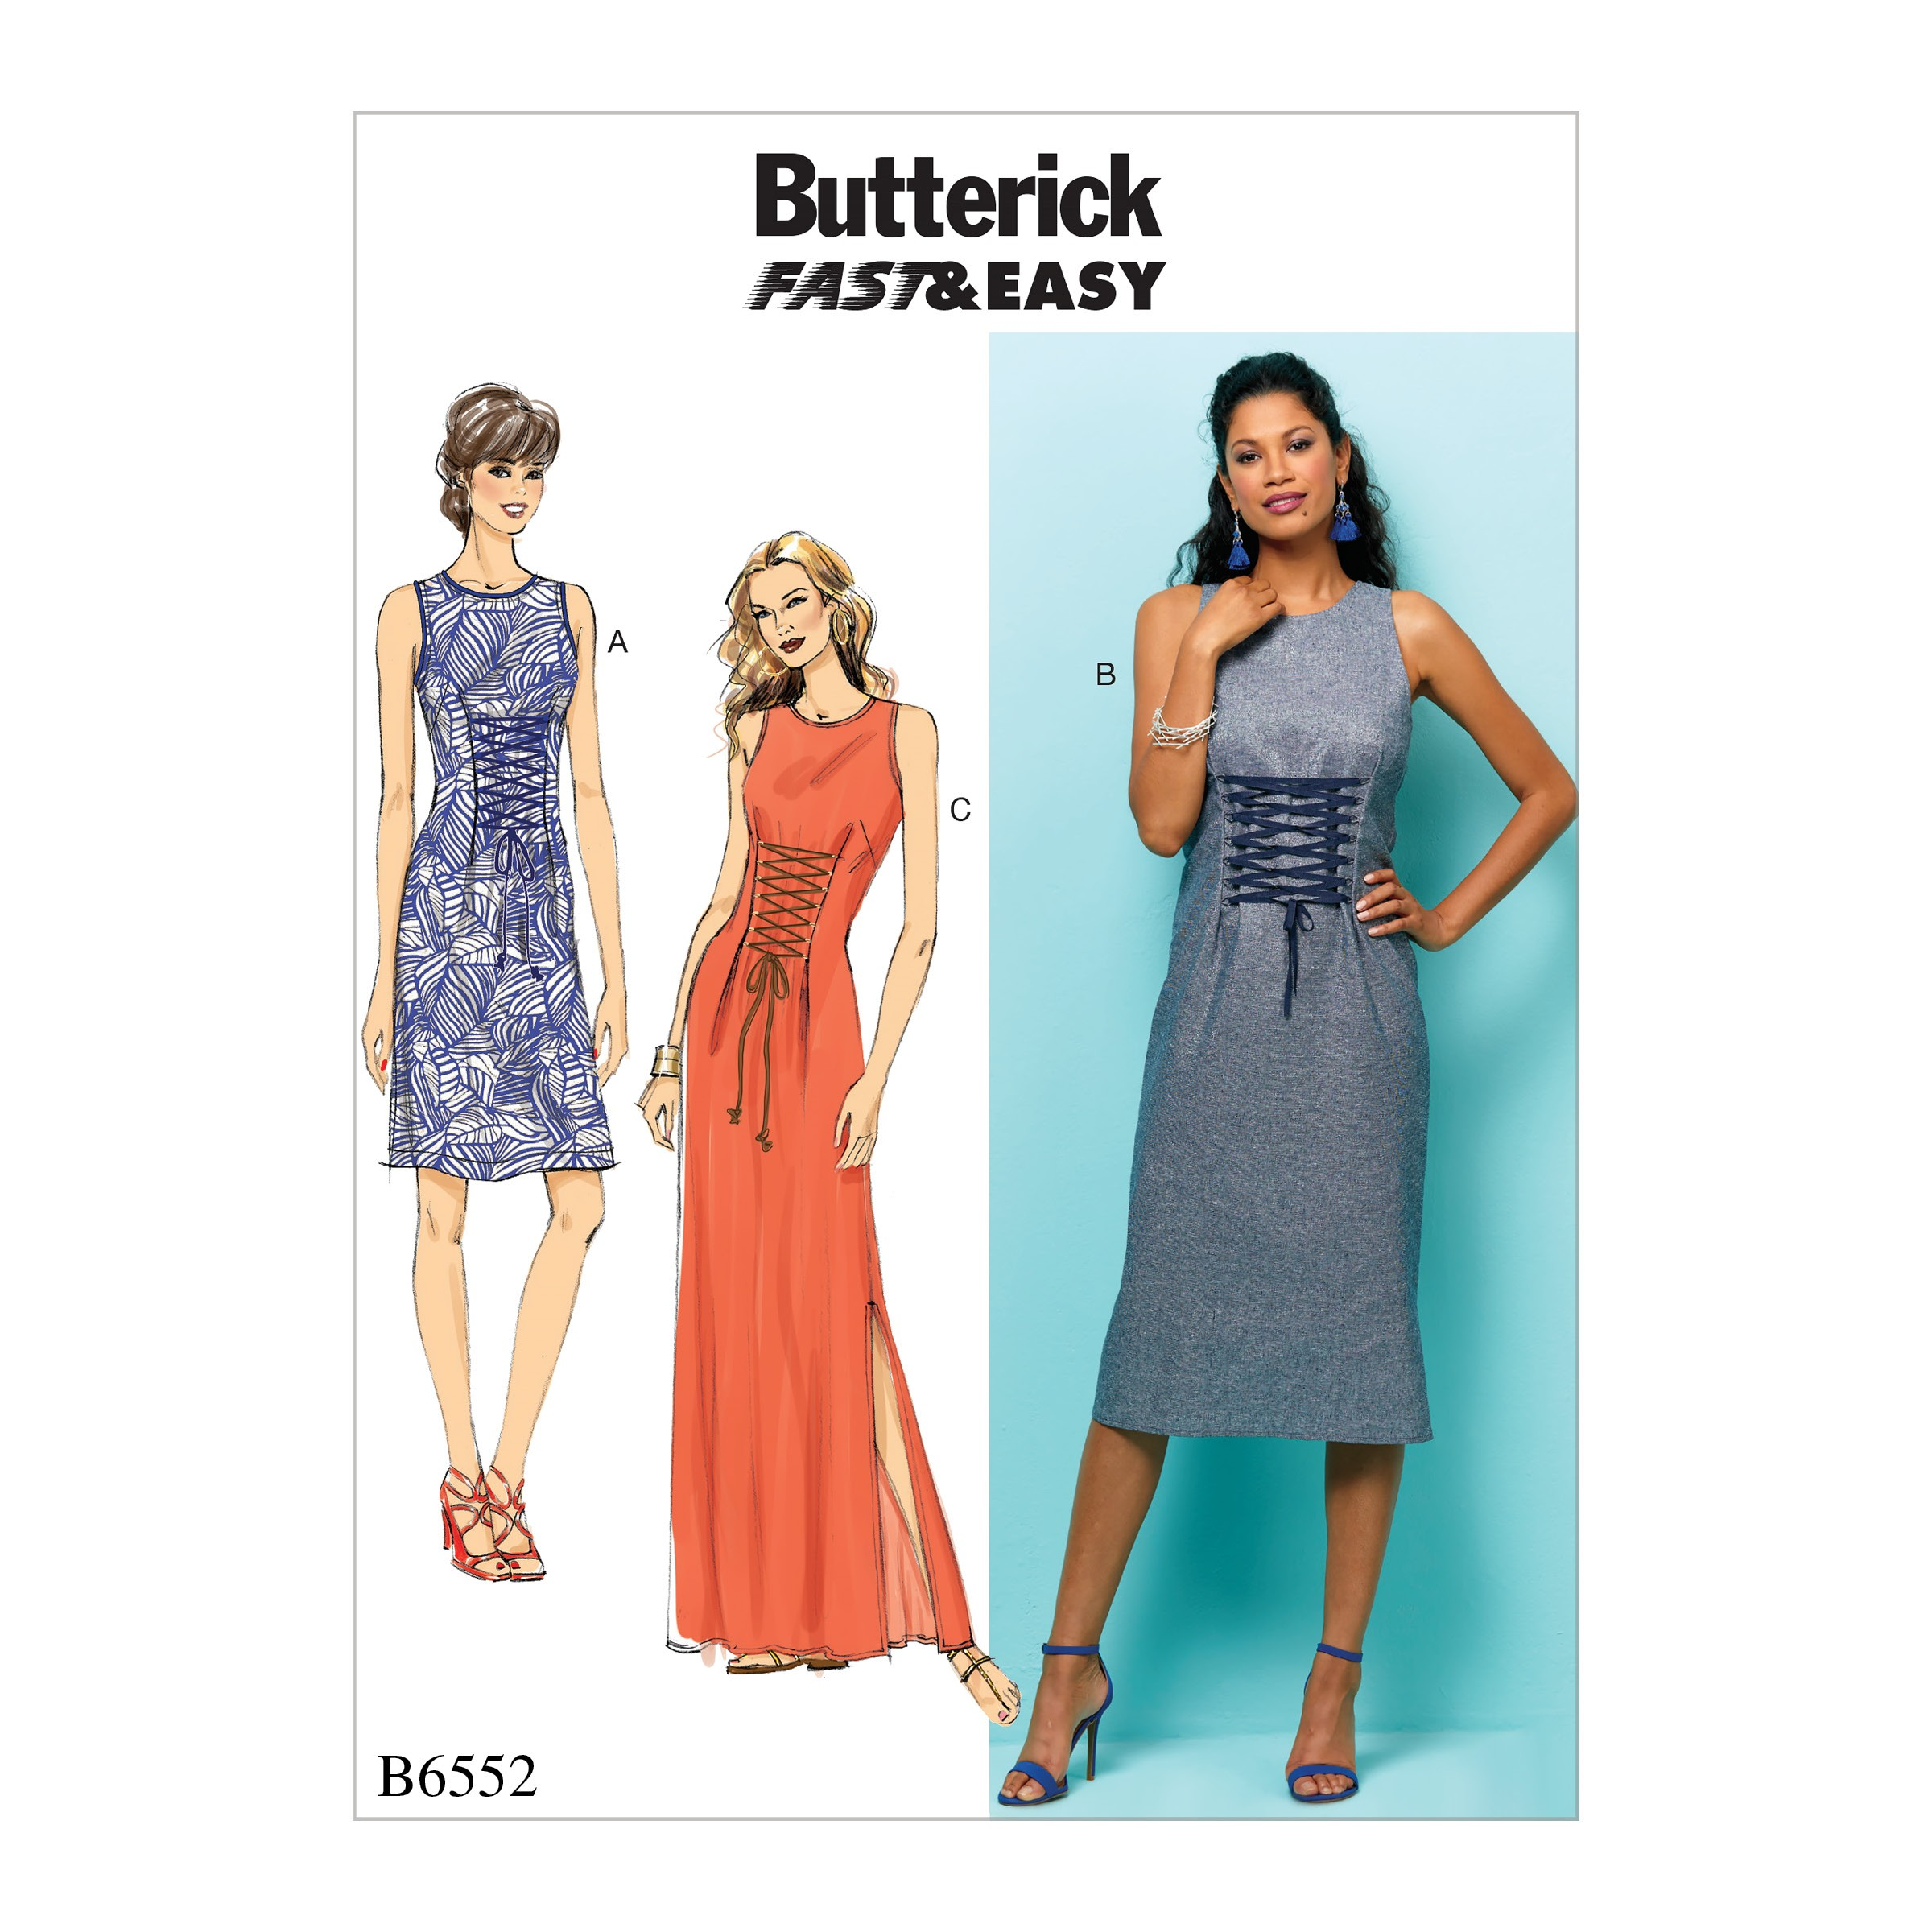 Butterick Sewing Pattern 6552 Misses' Dress